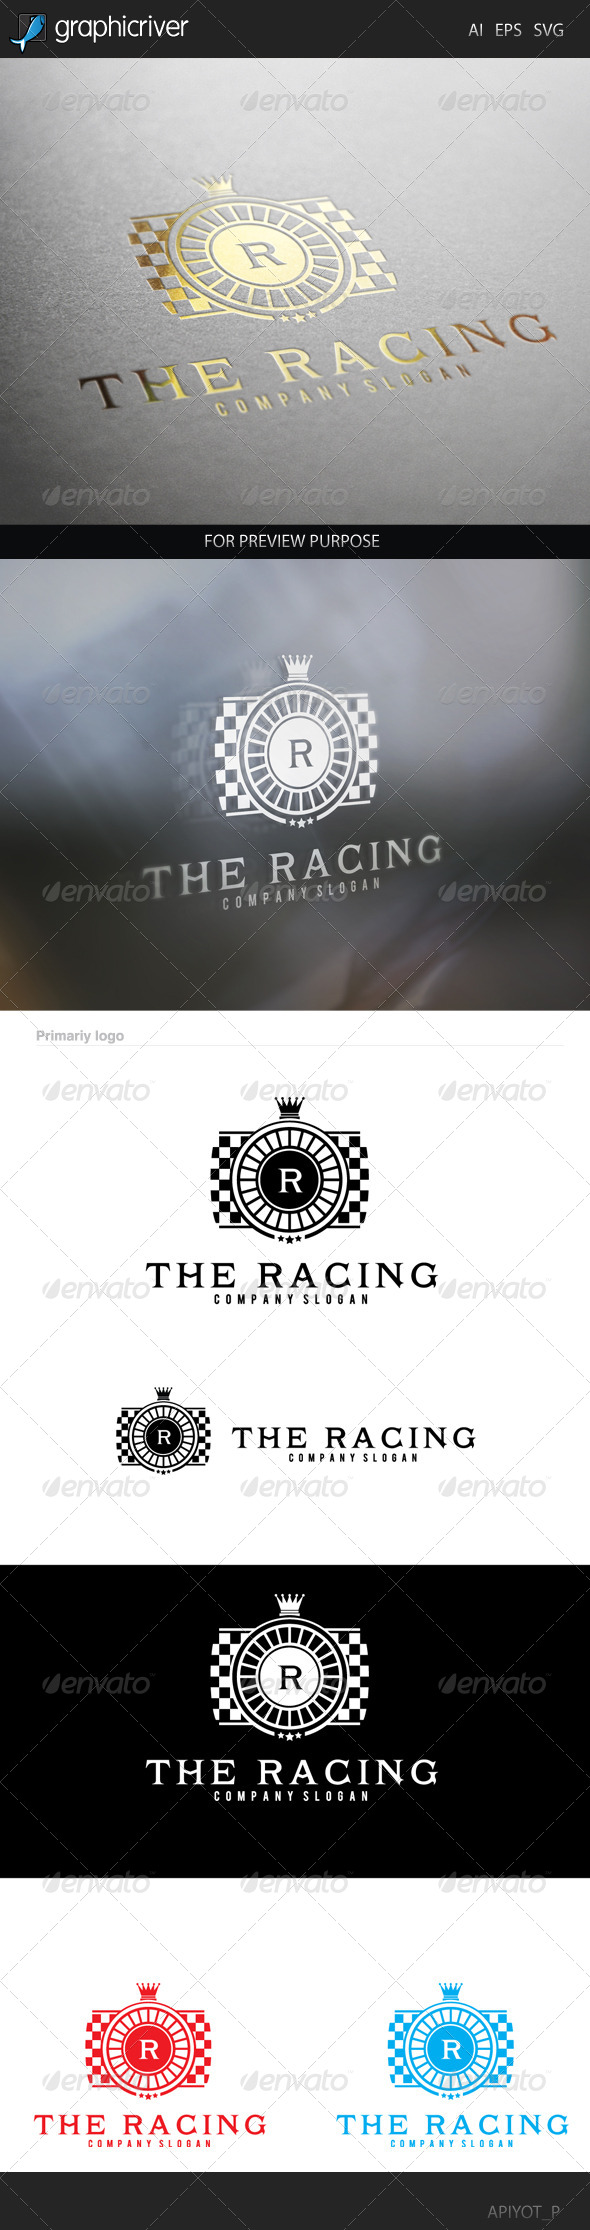 GraphicRiver The Racing Logo 8565516